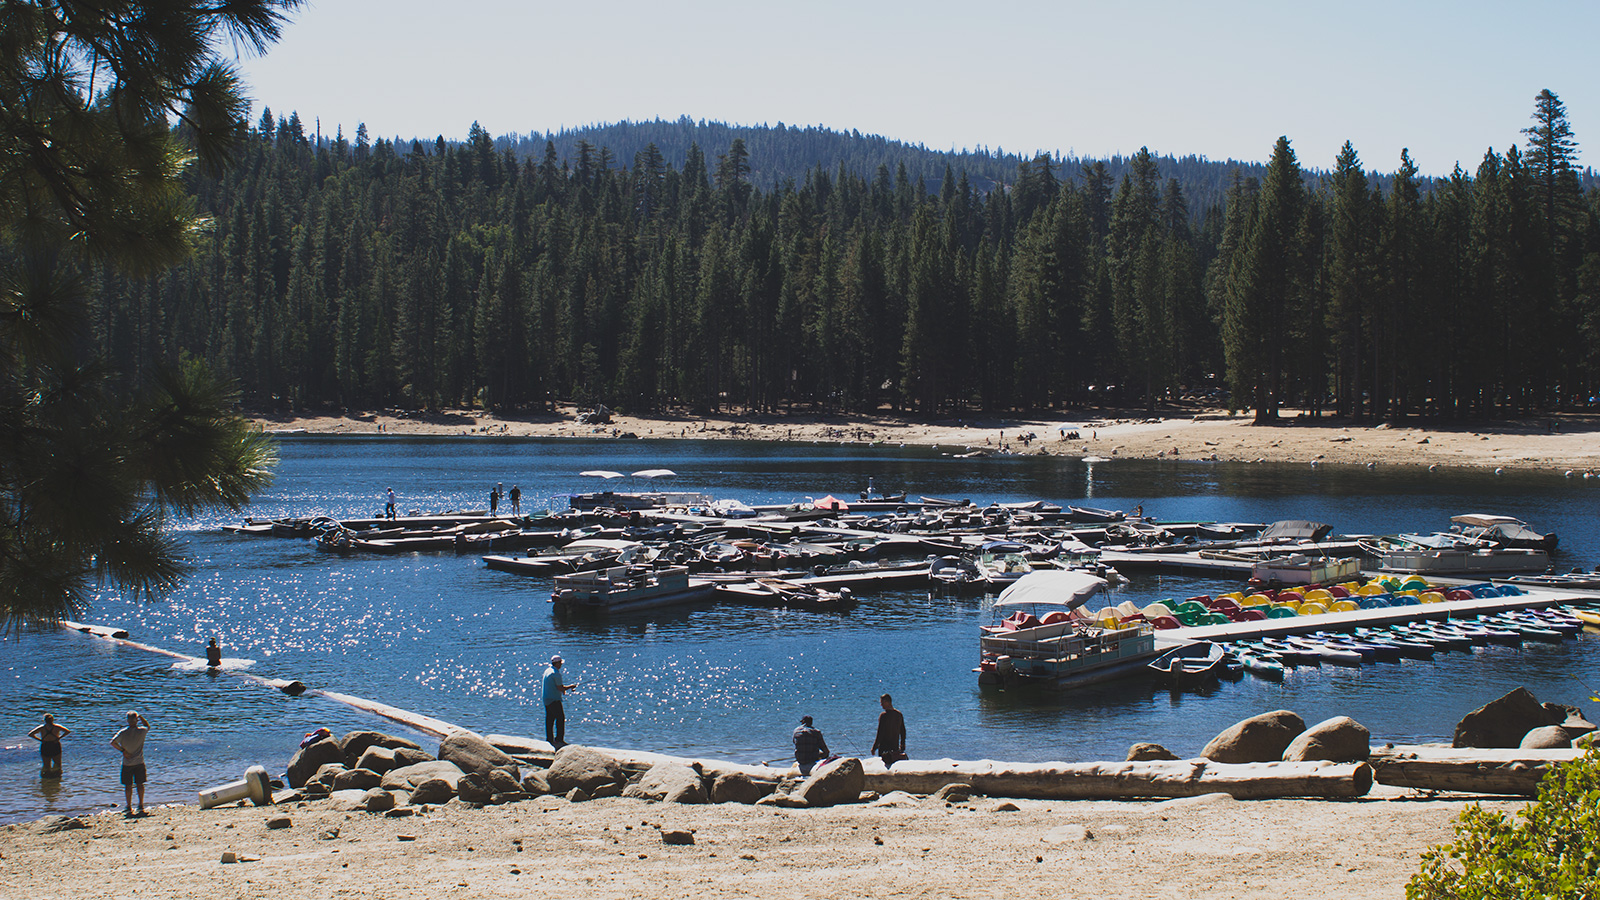 The marina at Pinecrest Lake